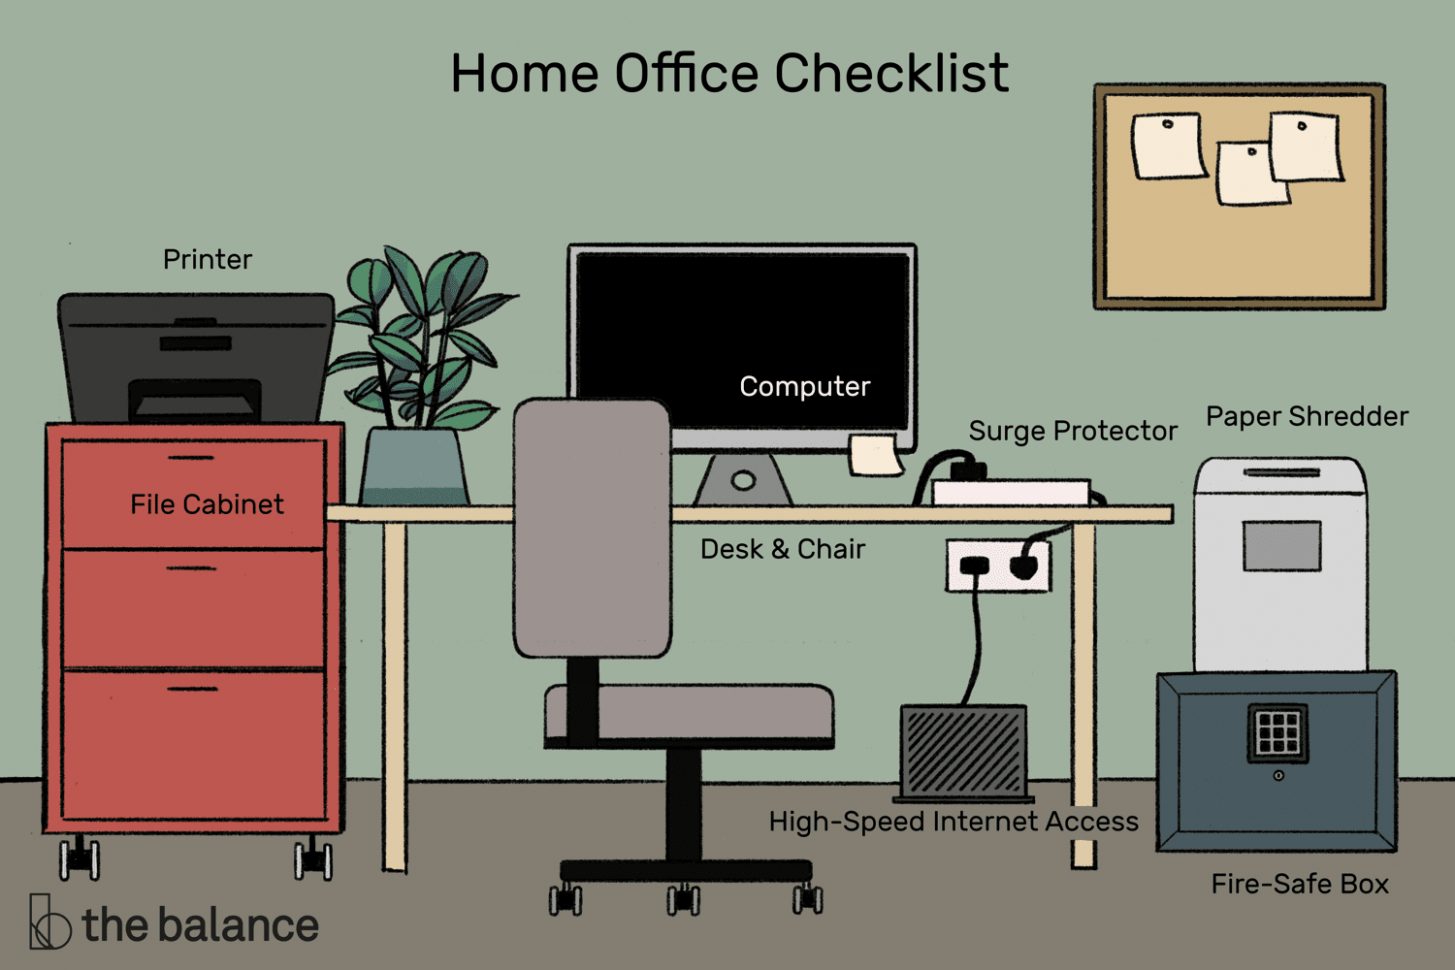 12 Items You Need to Set up an Efficient Home Office